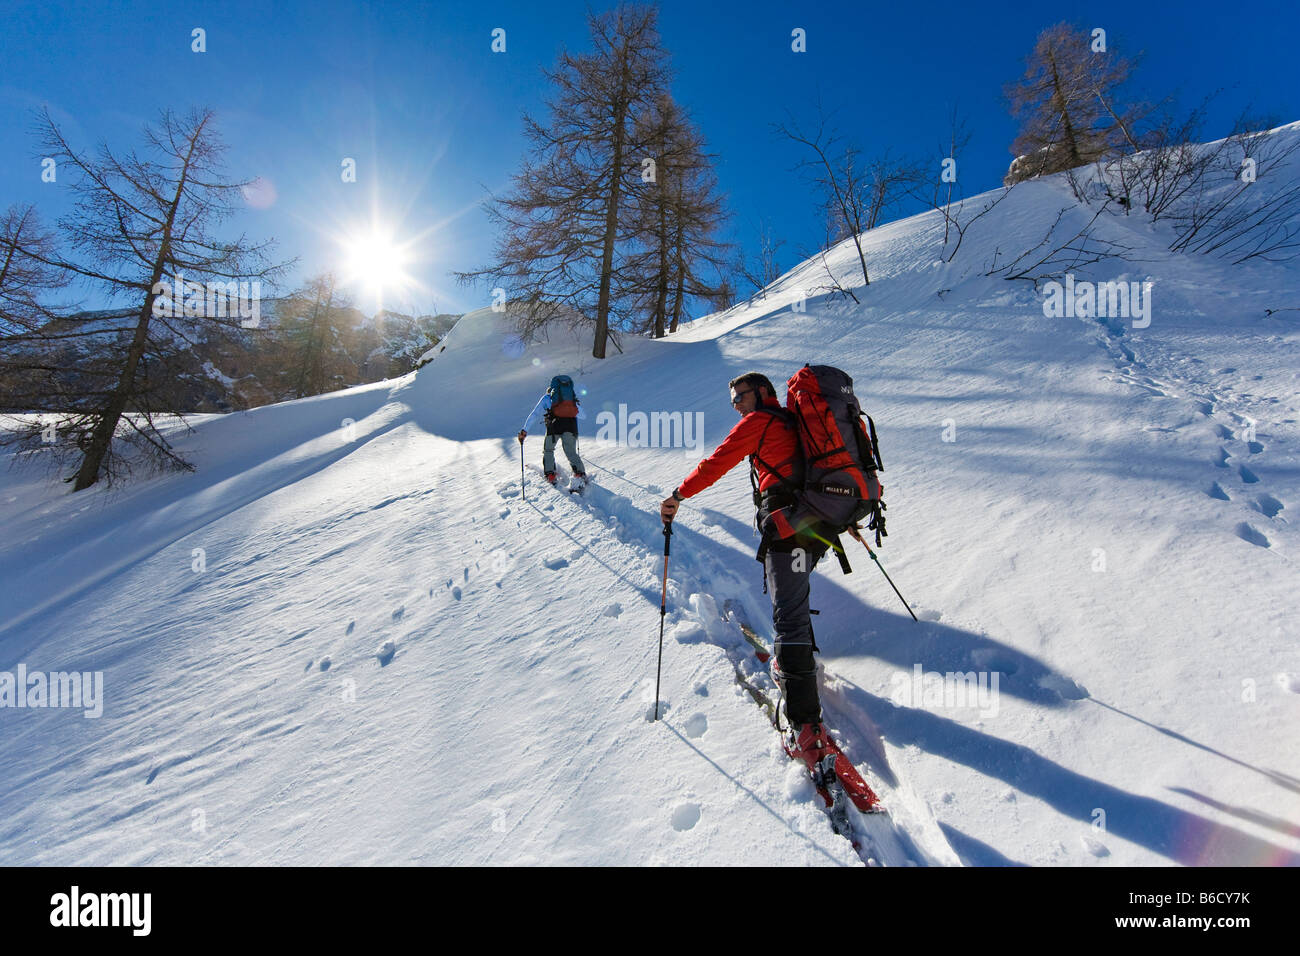 Two skiers walking with skis on snowcovered mountain, Knallstein, Tennengebirge, Tennengau, Salzburg, Austria - Stock Image